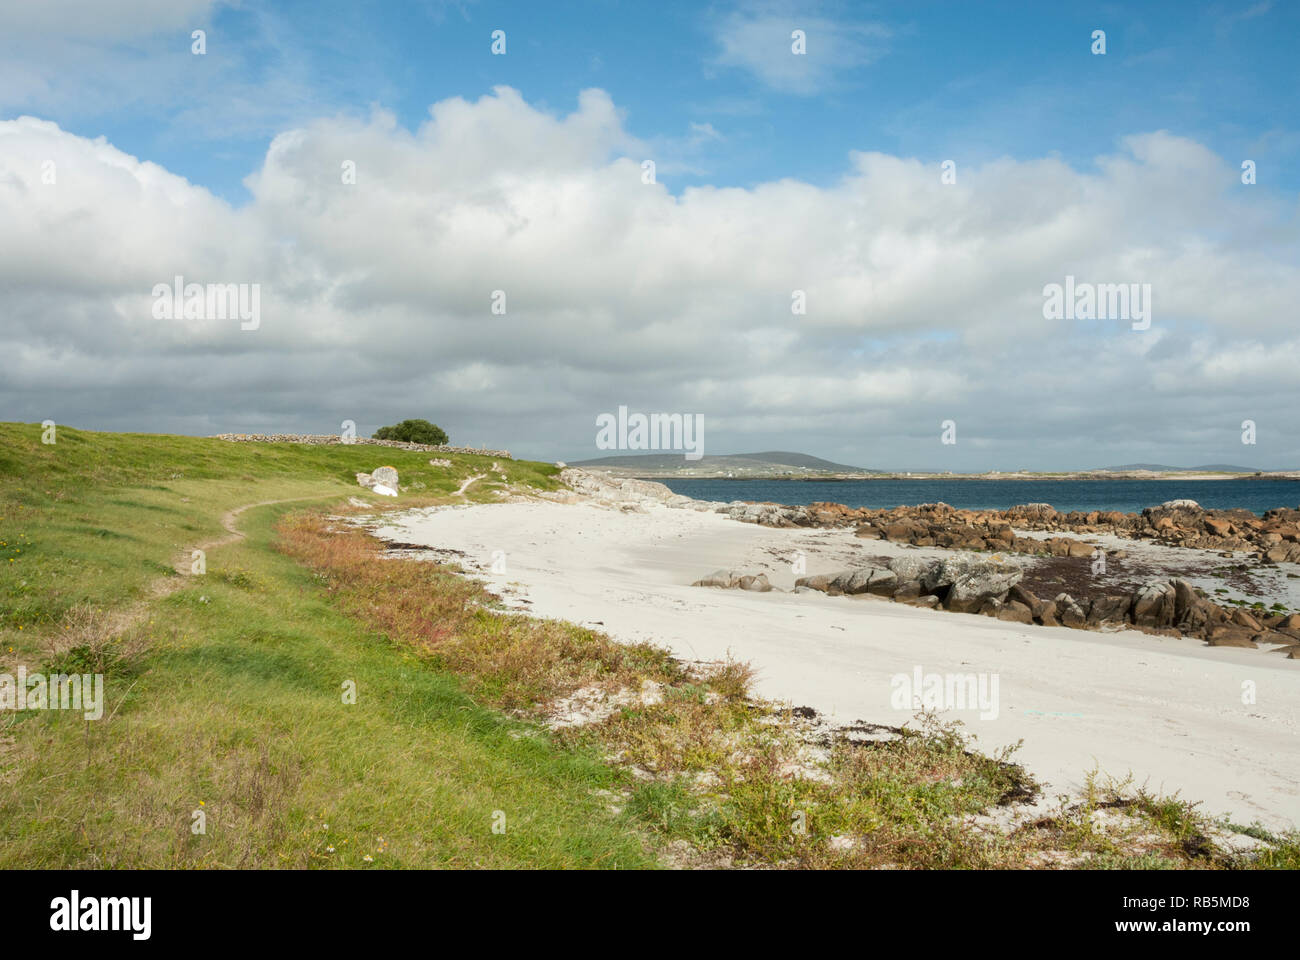 The pristine golden sands of Mweenish Beach on a sunny day in late summer on Mweenish Island, ideal for swimming, walking and relaxing. - Stock Image